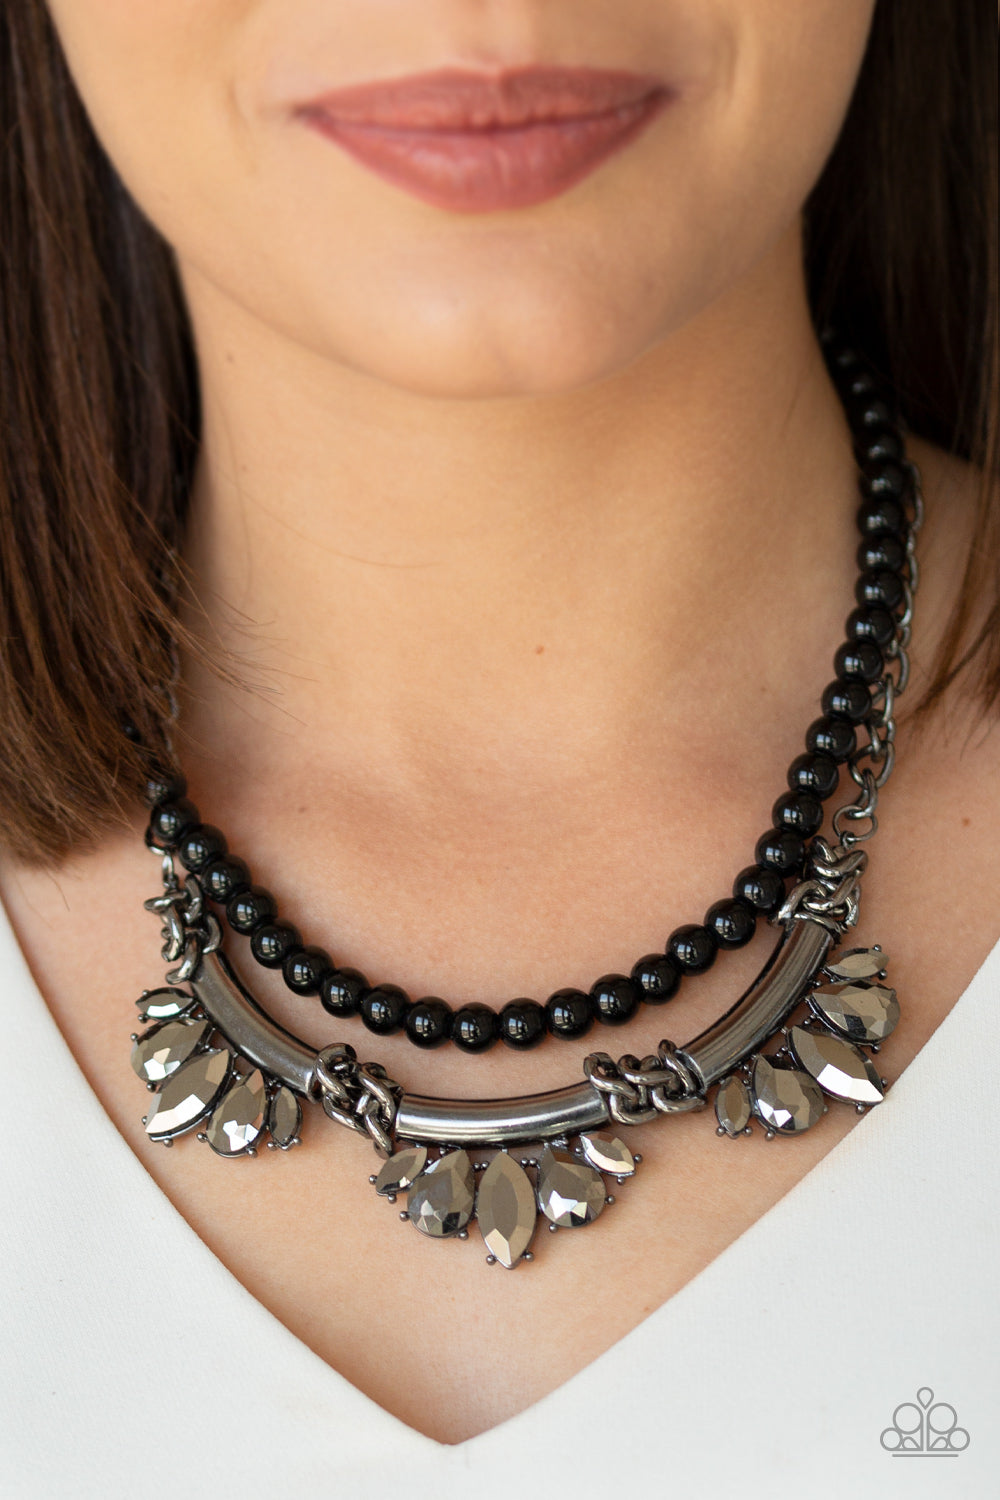 Bow Before The Queen - Black Beads Hematite Rhinestone Paparazzi Jewelry Necklace paparazzi accessories jewelry neckace